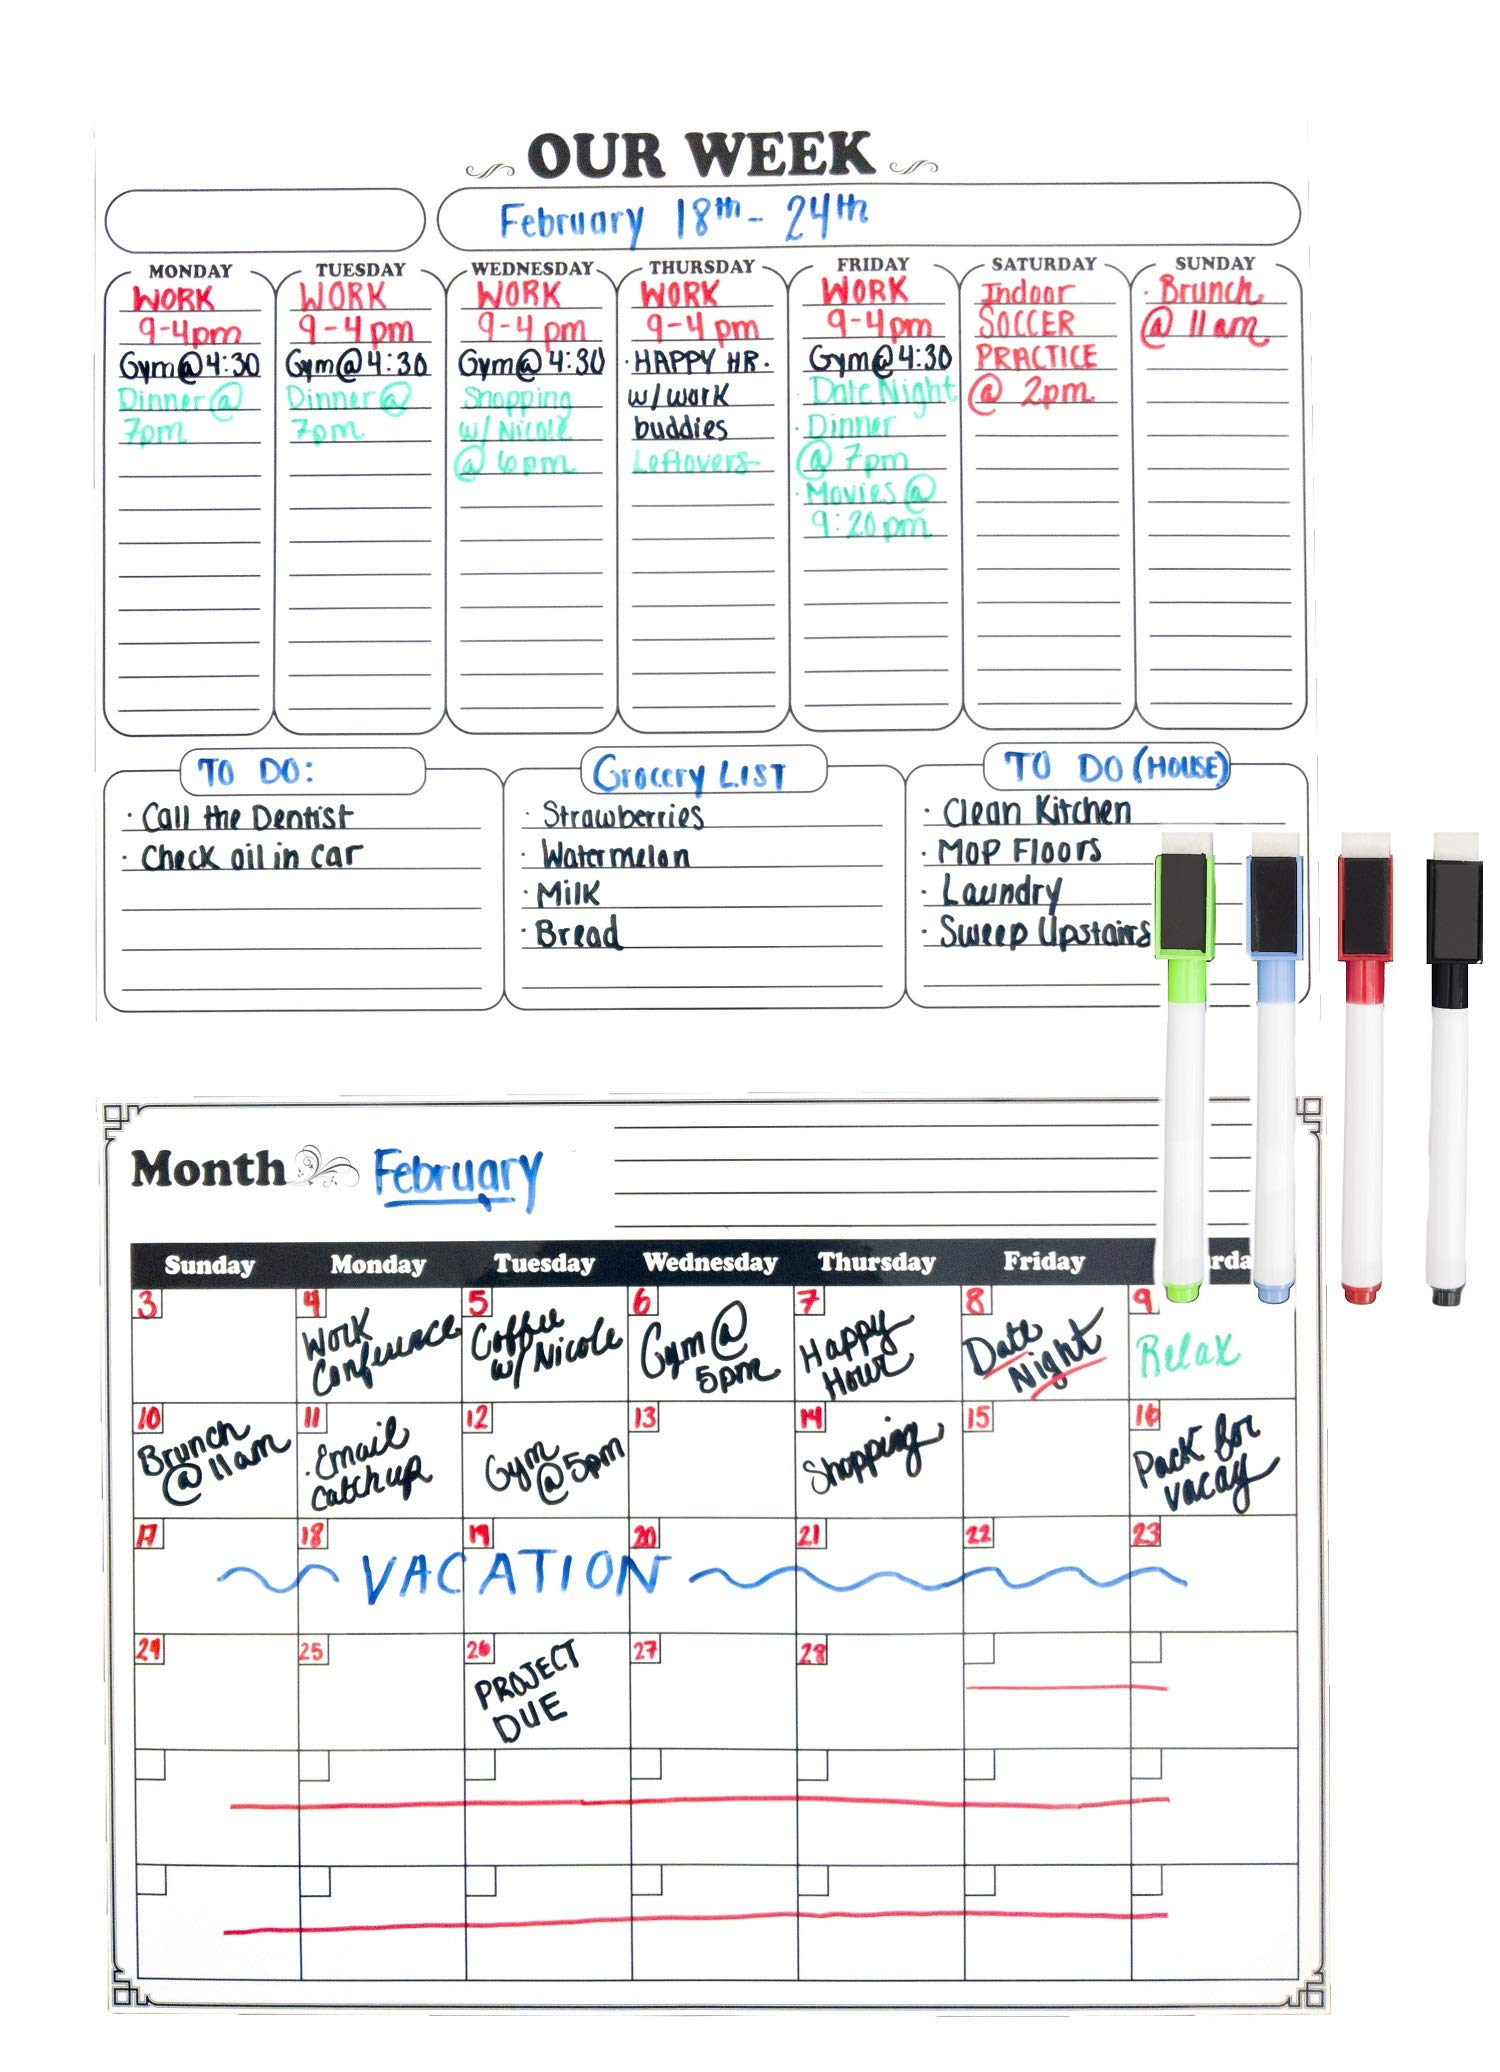 Magnetic Calendar For Fridge 2019 2-Pack. Dry Erase Whiteboard For Refrigerator, Monthly & Weekly Kitchen Planners 16 x 12 inch